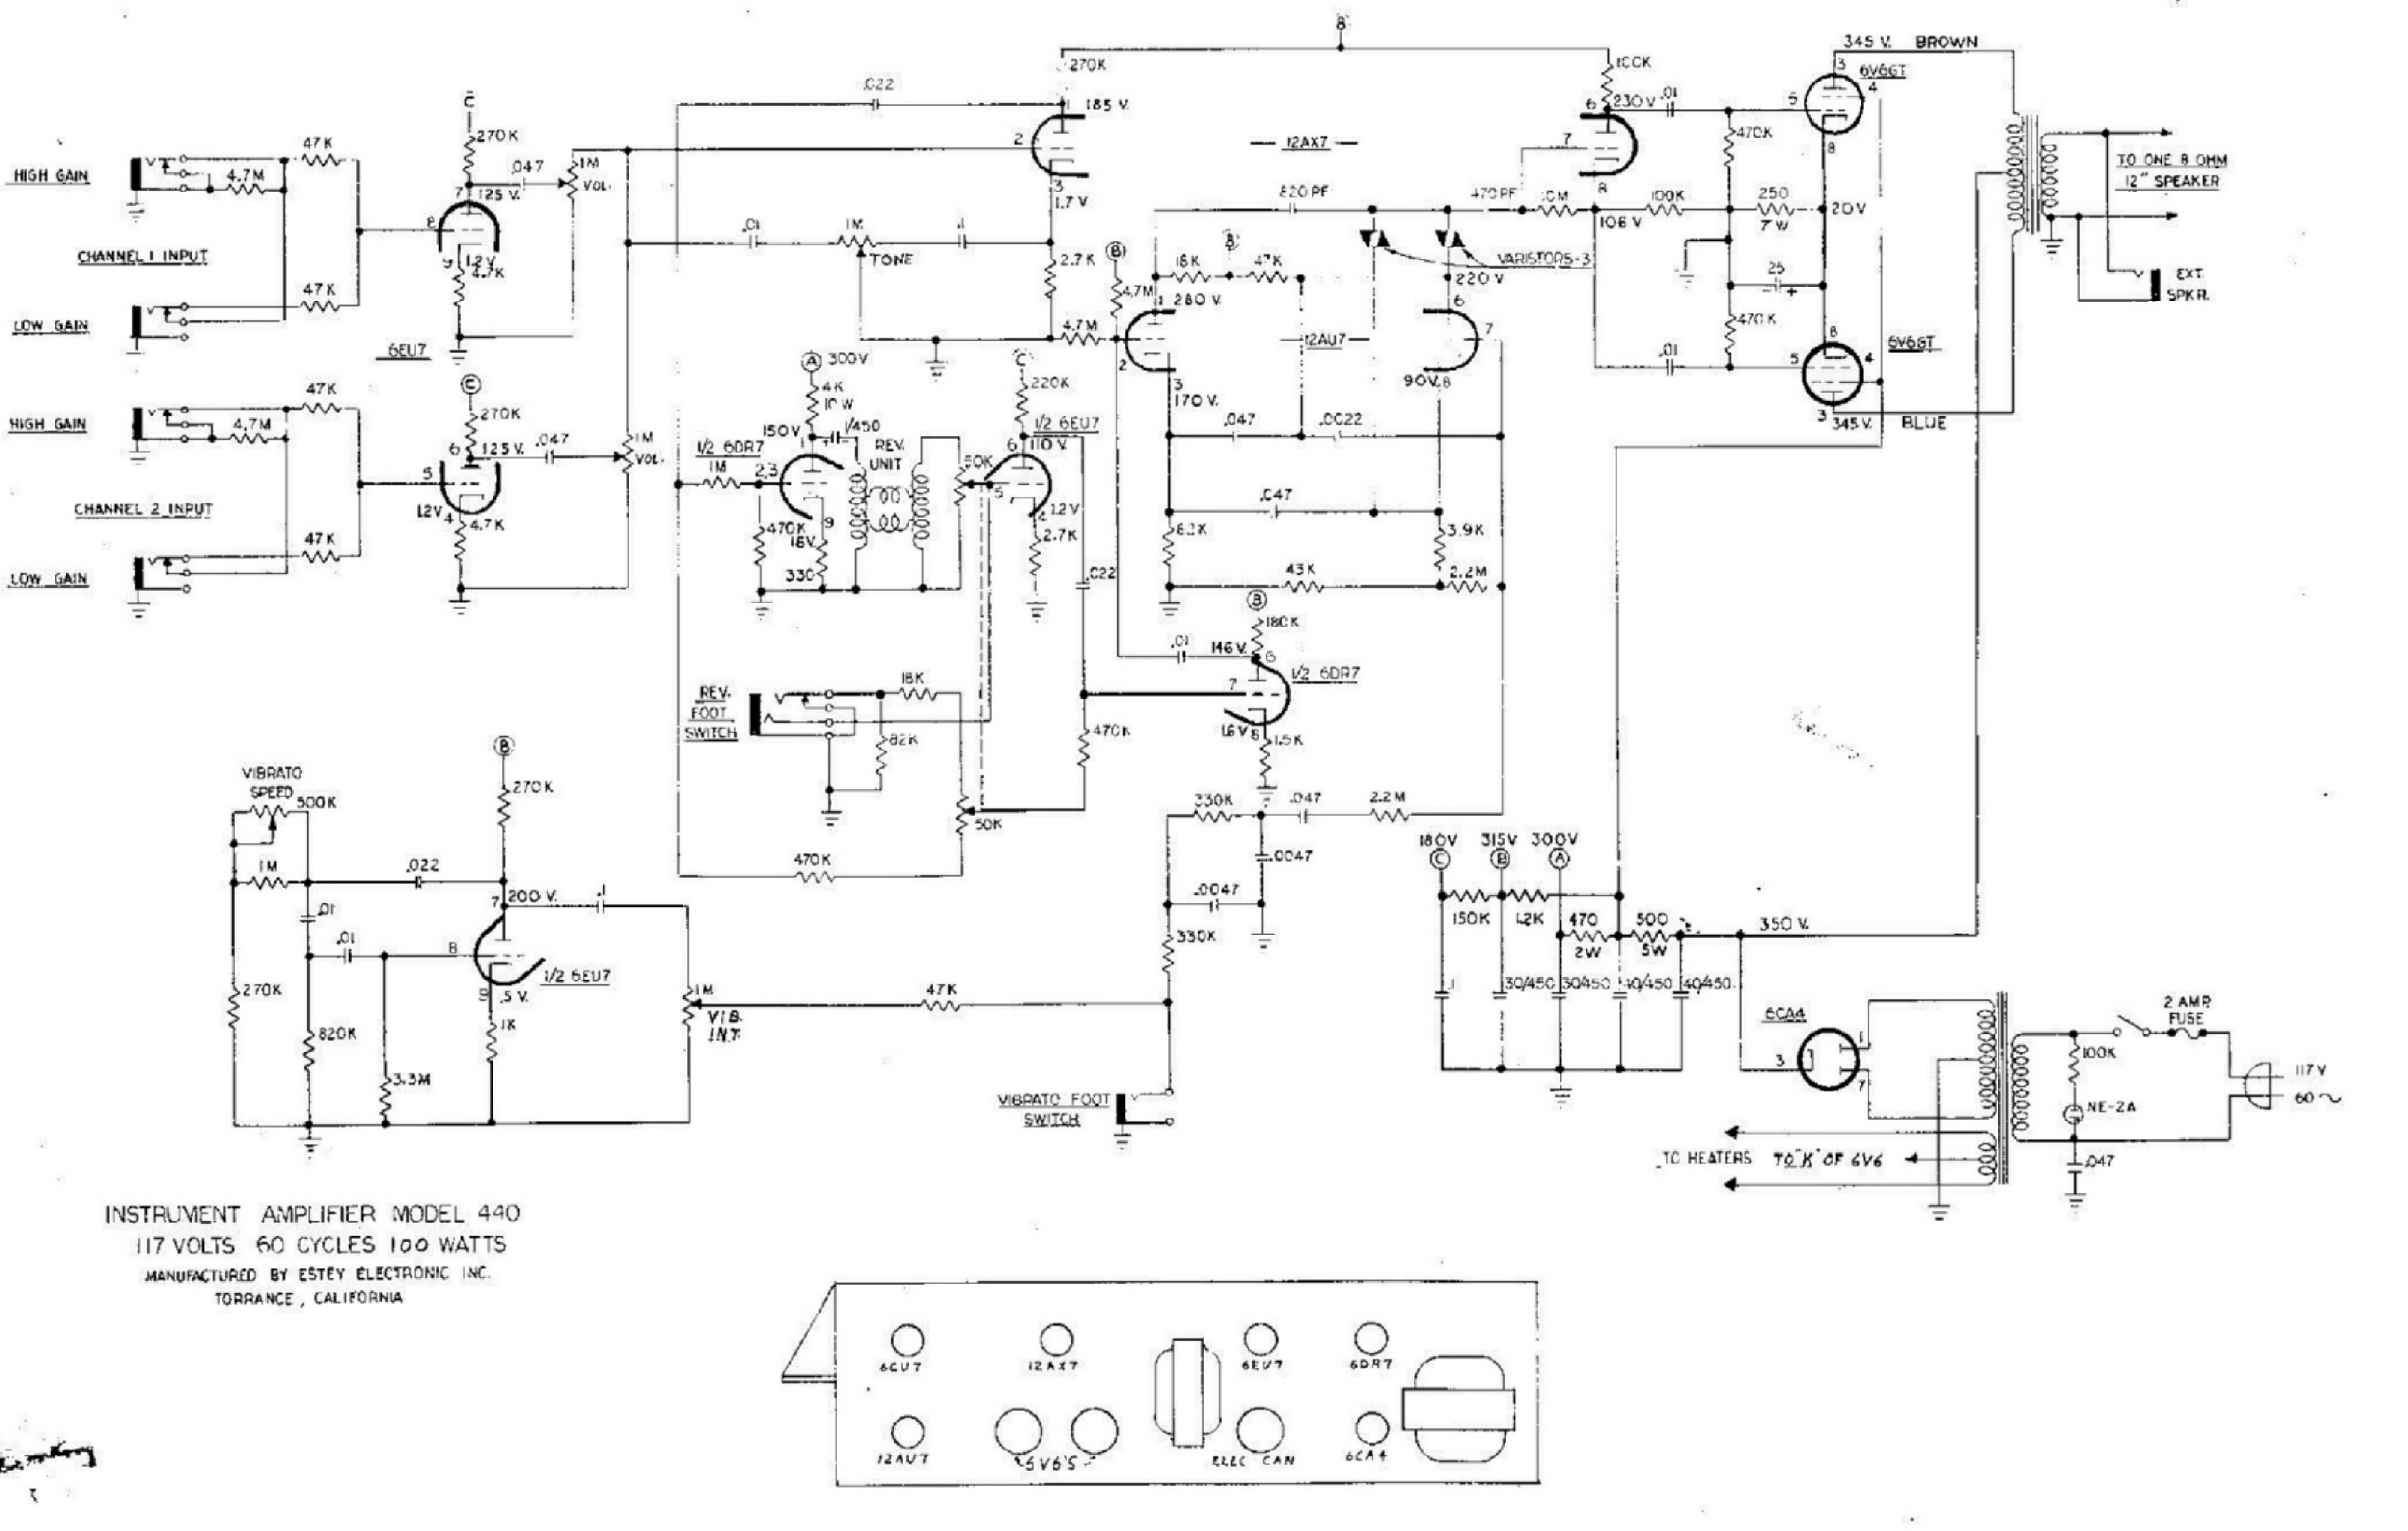 Vintage Magnatone Amplifier Schematic - Wiring Diagrams on vintage stereo amplifier, airline amplifiers, vintage hi-fi tube, magnatone twilighter amplifiers, vintage 1950s wood speaker, vintage magnatone guitar, vintage marshall amp models, vintage magnatone m9, vintage amps 1960, magnatone trubador guitar amplifiers, 1960s guitar amplifiers, rare magnatone amplifiers, vintage magnatone troubadour,